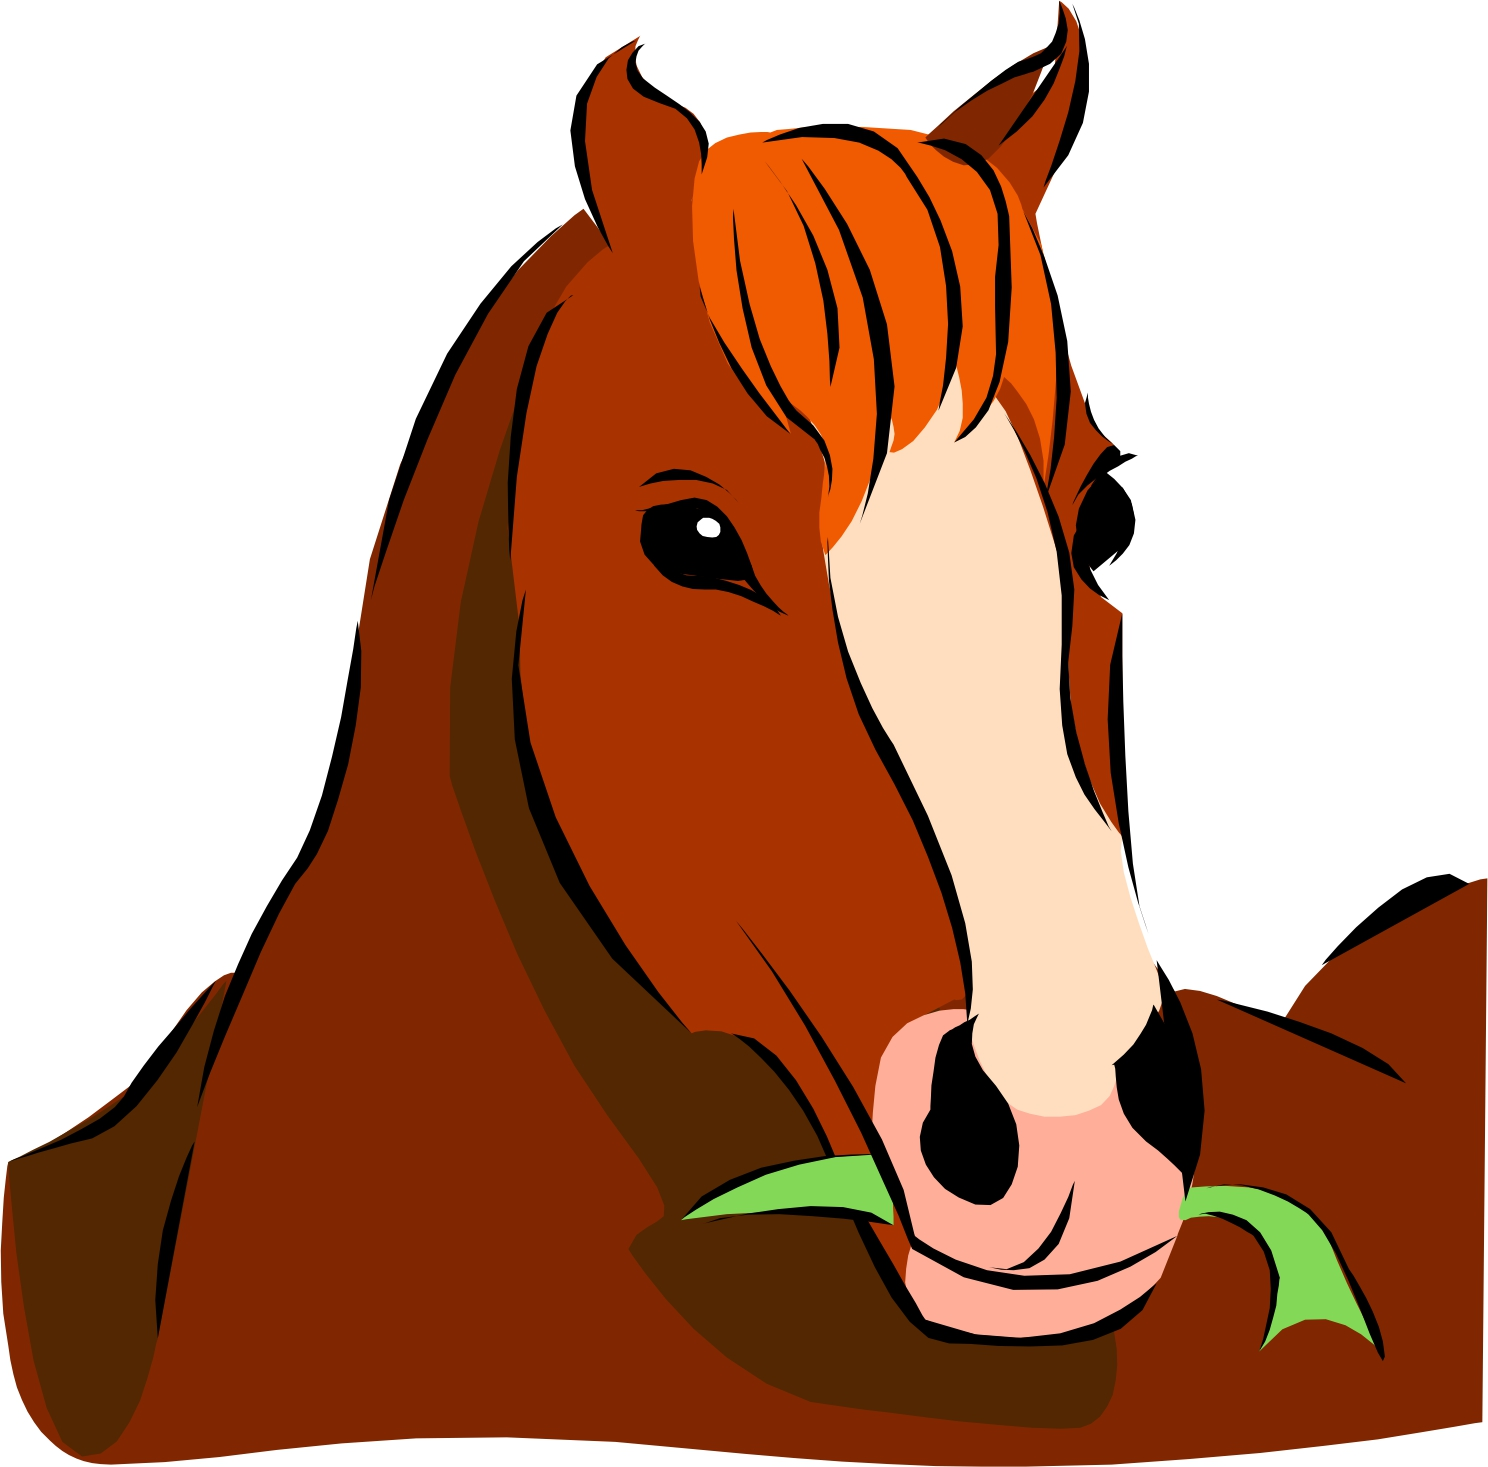 Free Horses Eating Cliparts, Download Free Clip Art, Free Clip Art.